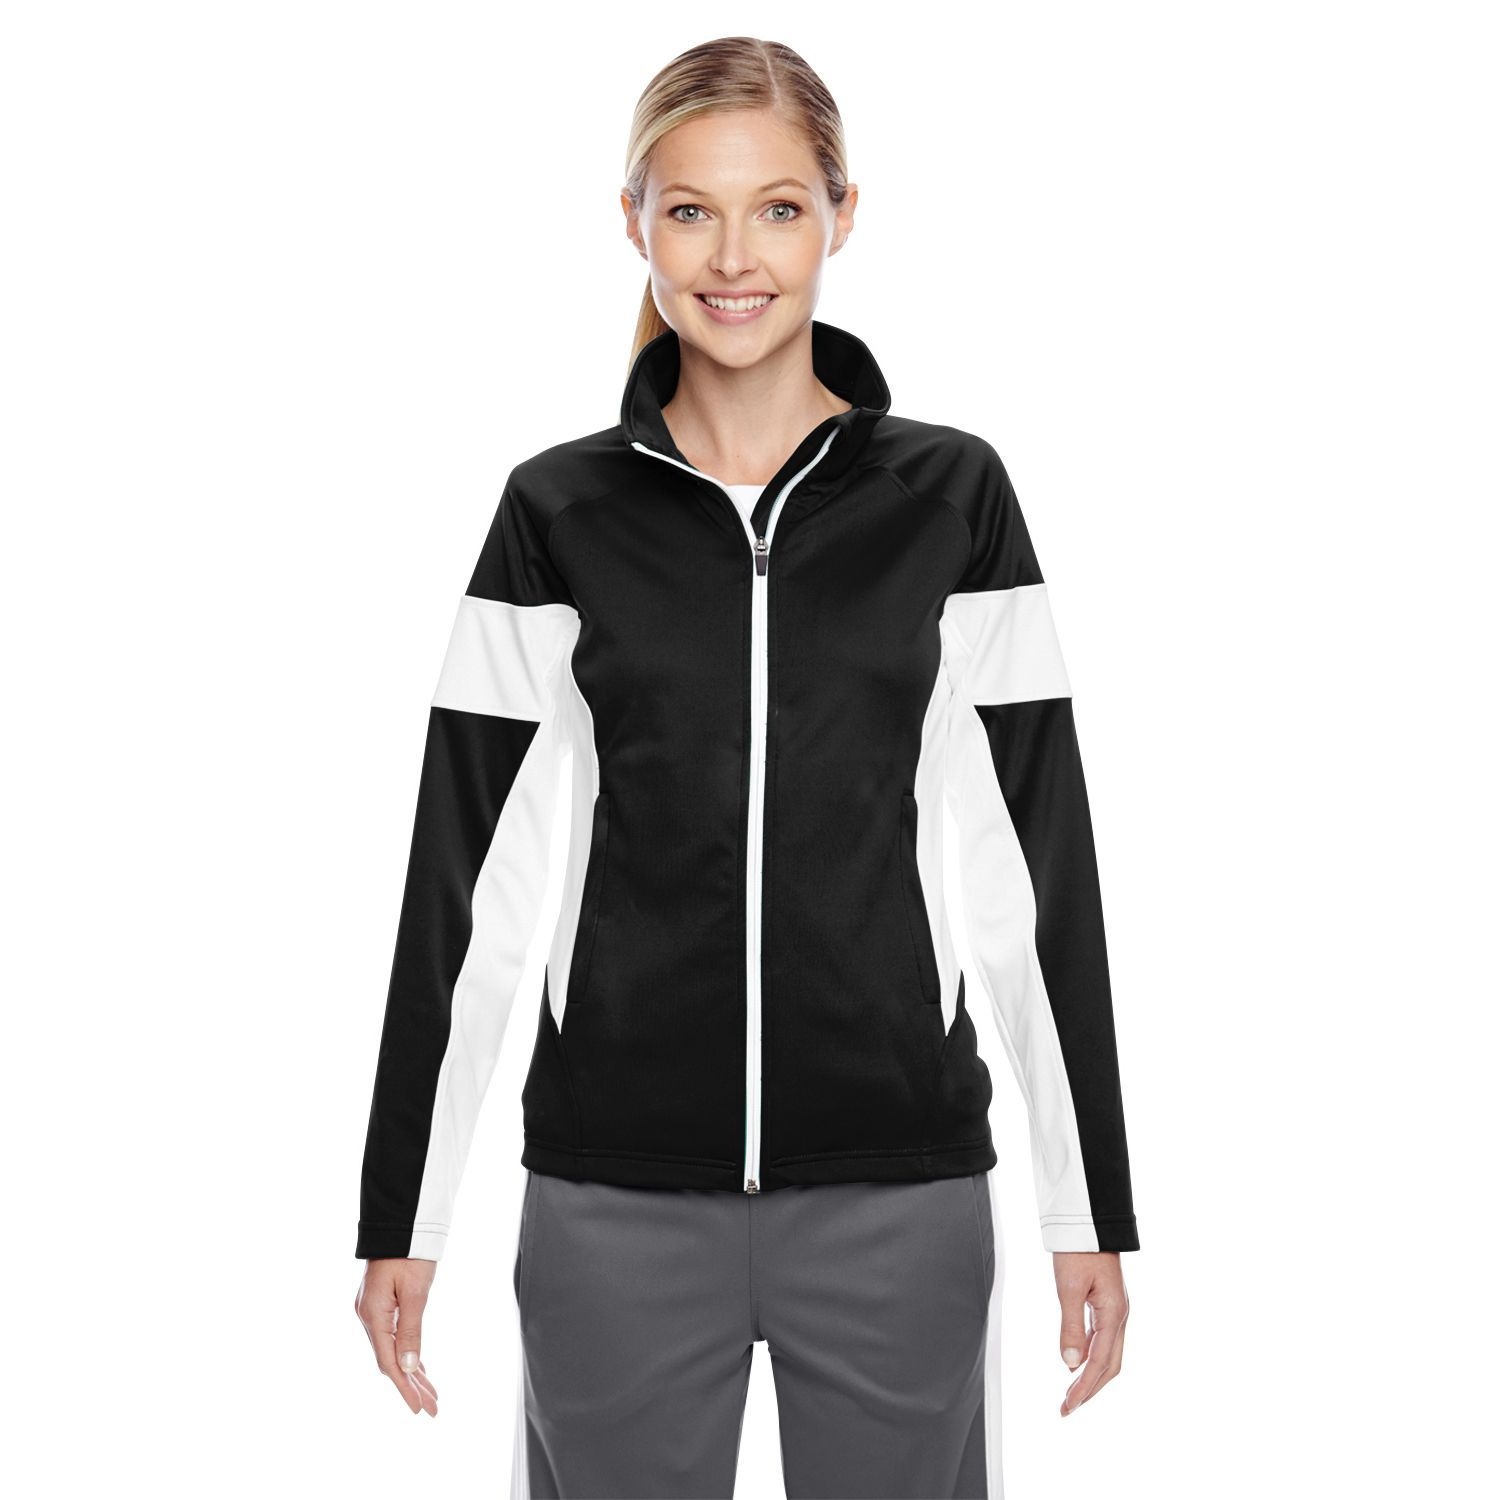 Elite Women's / White Performance Full-zip